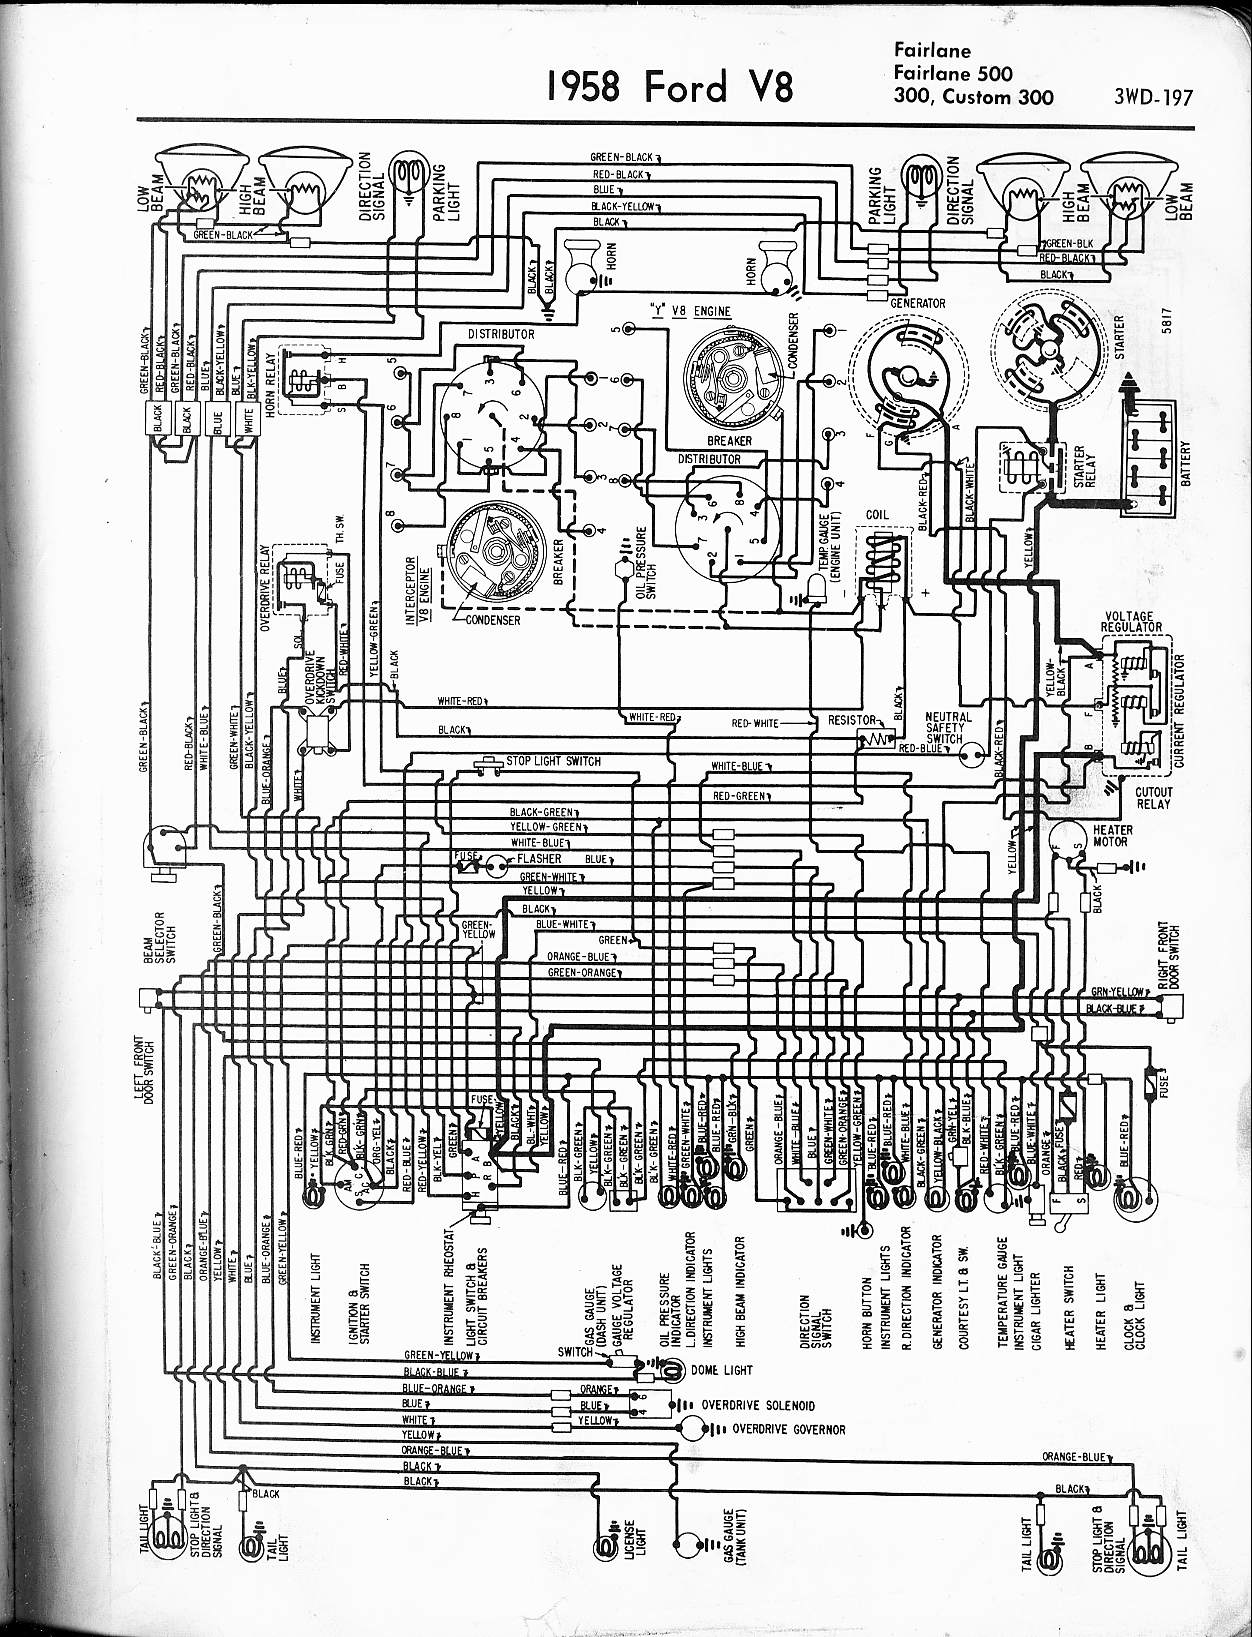 MWire5765 197 57 65 ford wiring diagrams 1957 ford wiring diagram at mr168.co